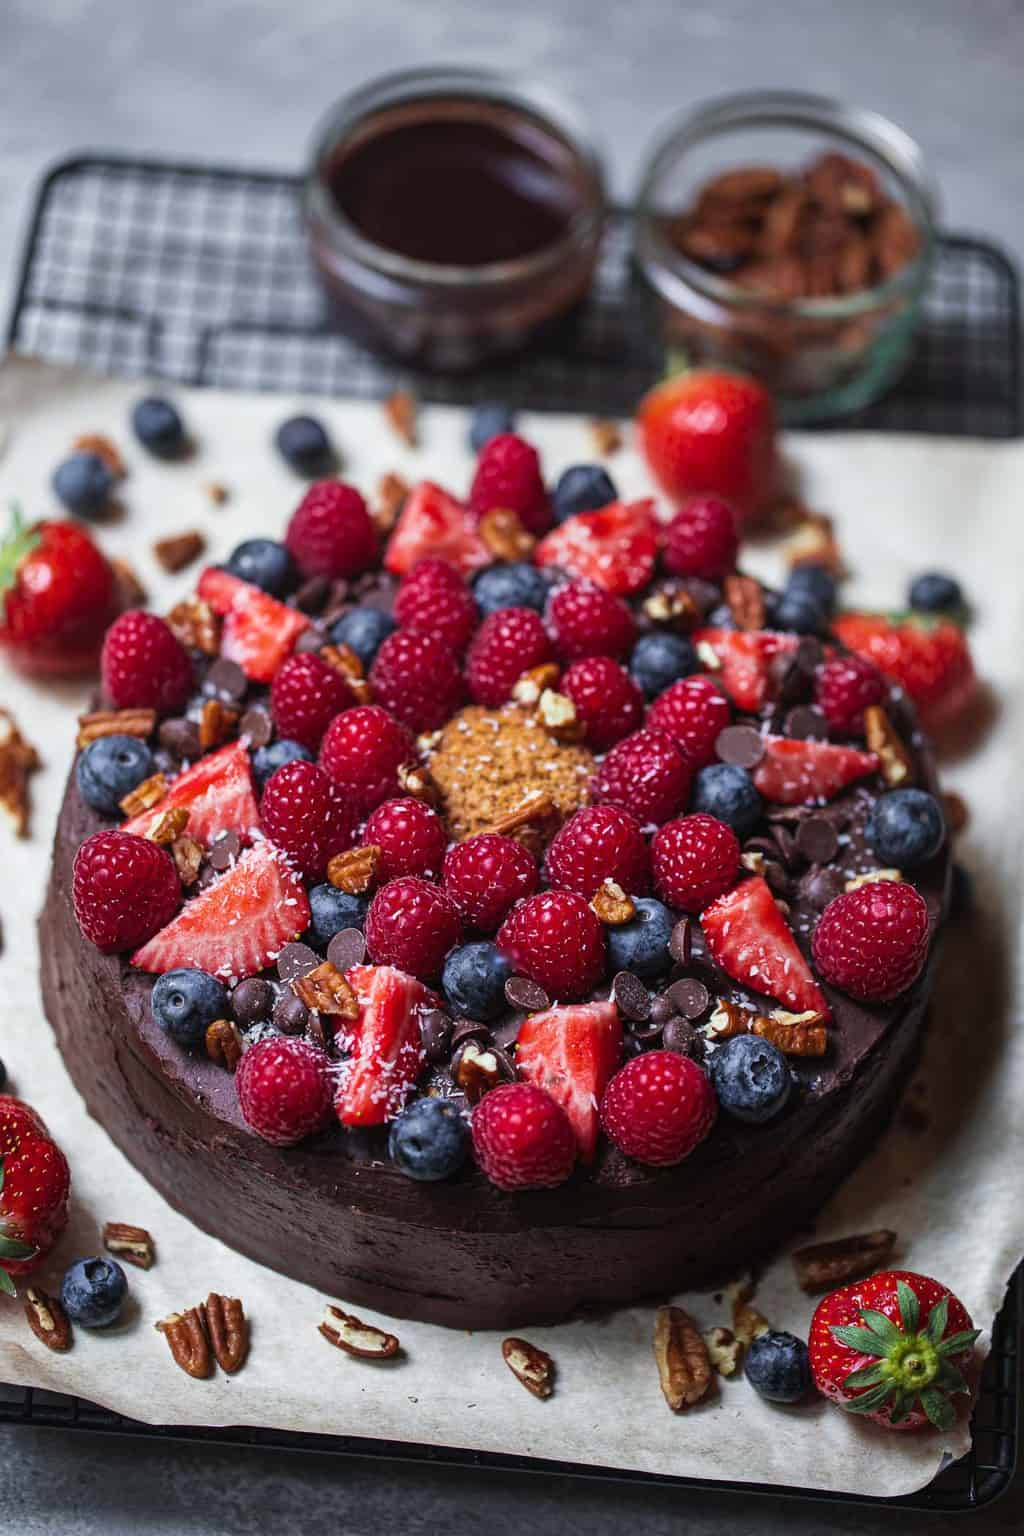 Dairy-free cake with berries on a cooling rack